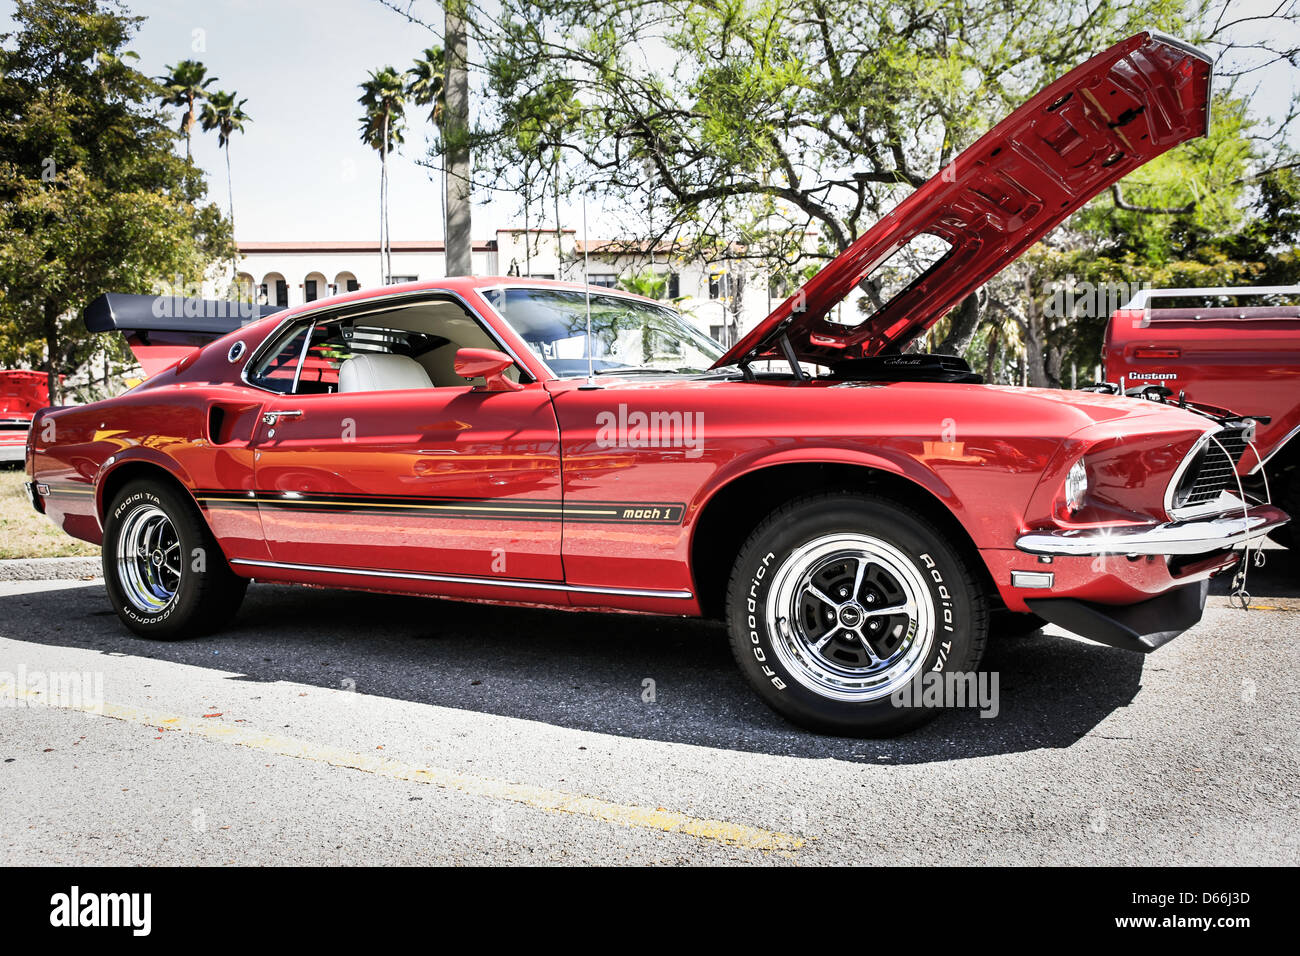 Cobra Jet Mustang >> 1969 Ford Mustang Mach 1 with a Cobra Jet engine Stock Photo: 55464961 - Alamy